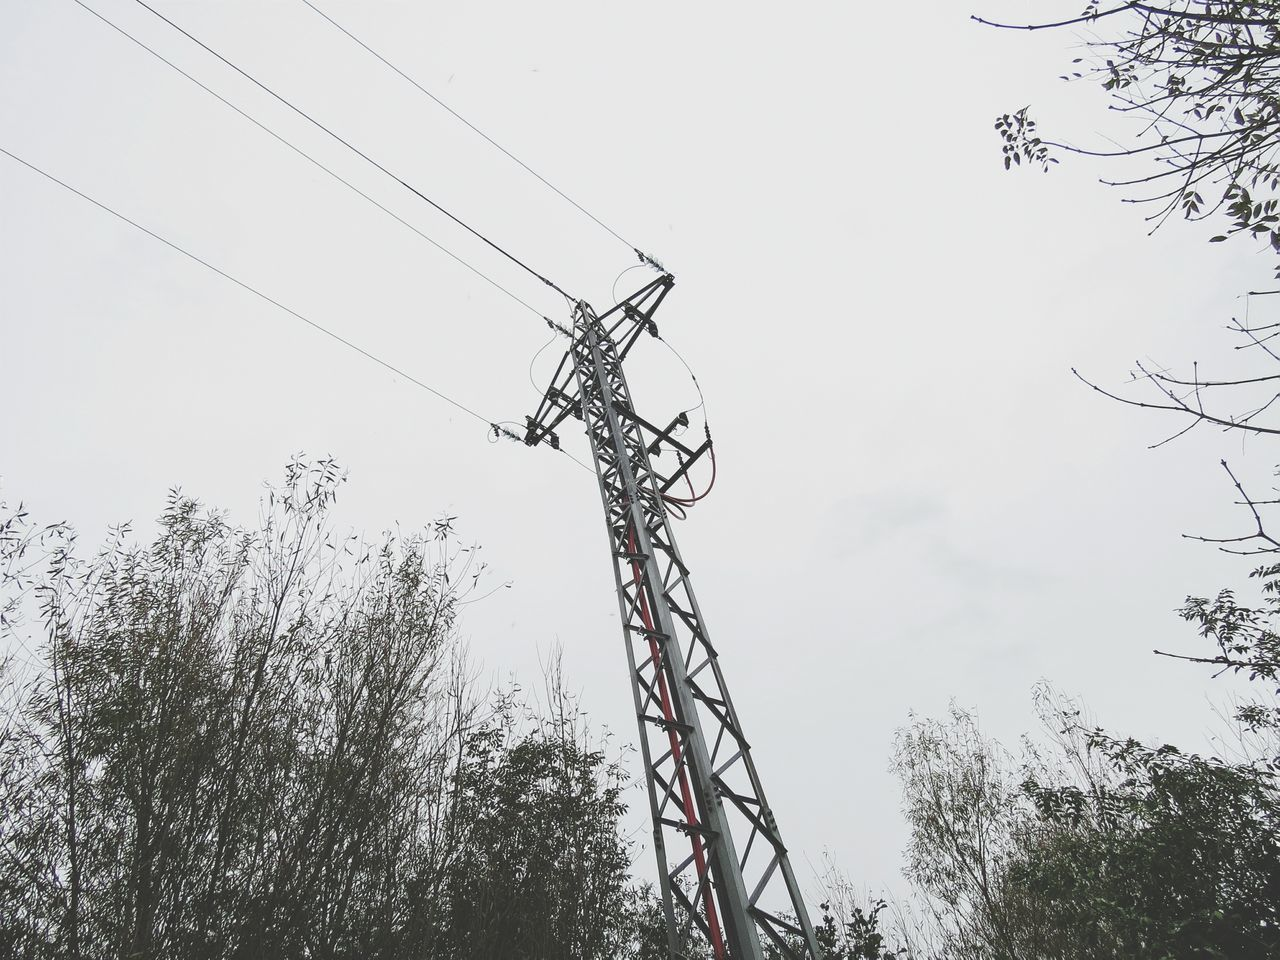 LOW ANGLE VIEW OF BIRDS ON ELECTRICITY PYLON